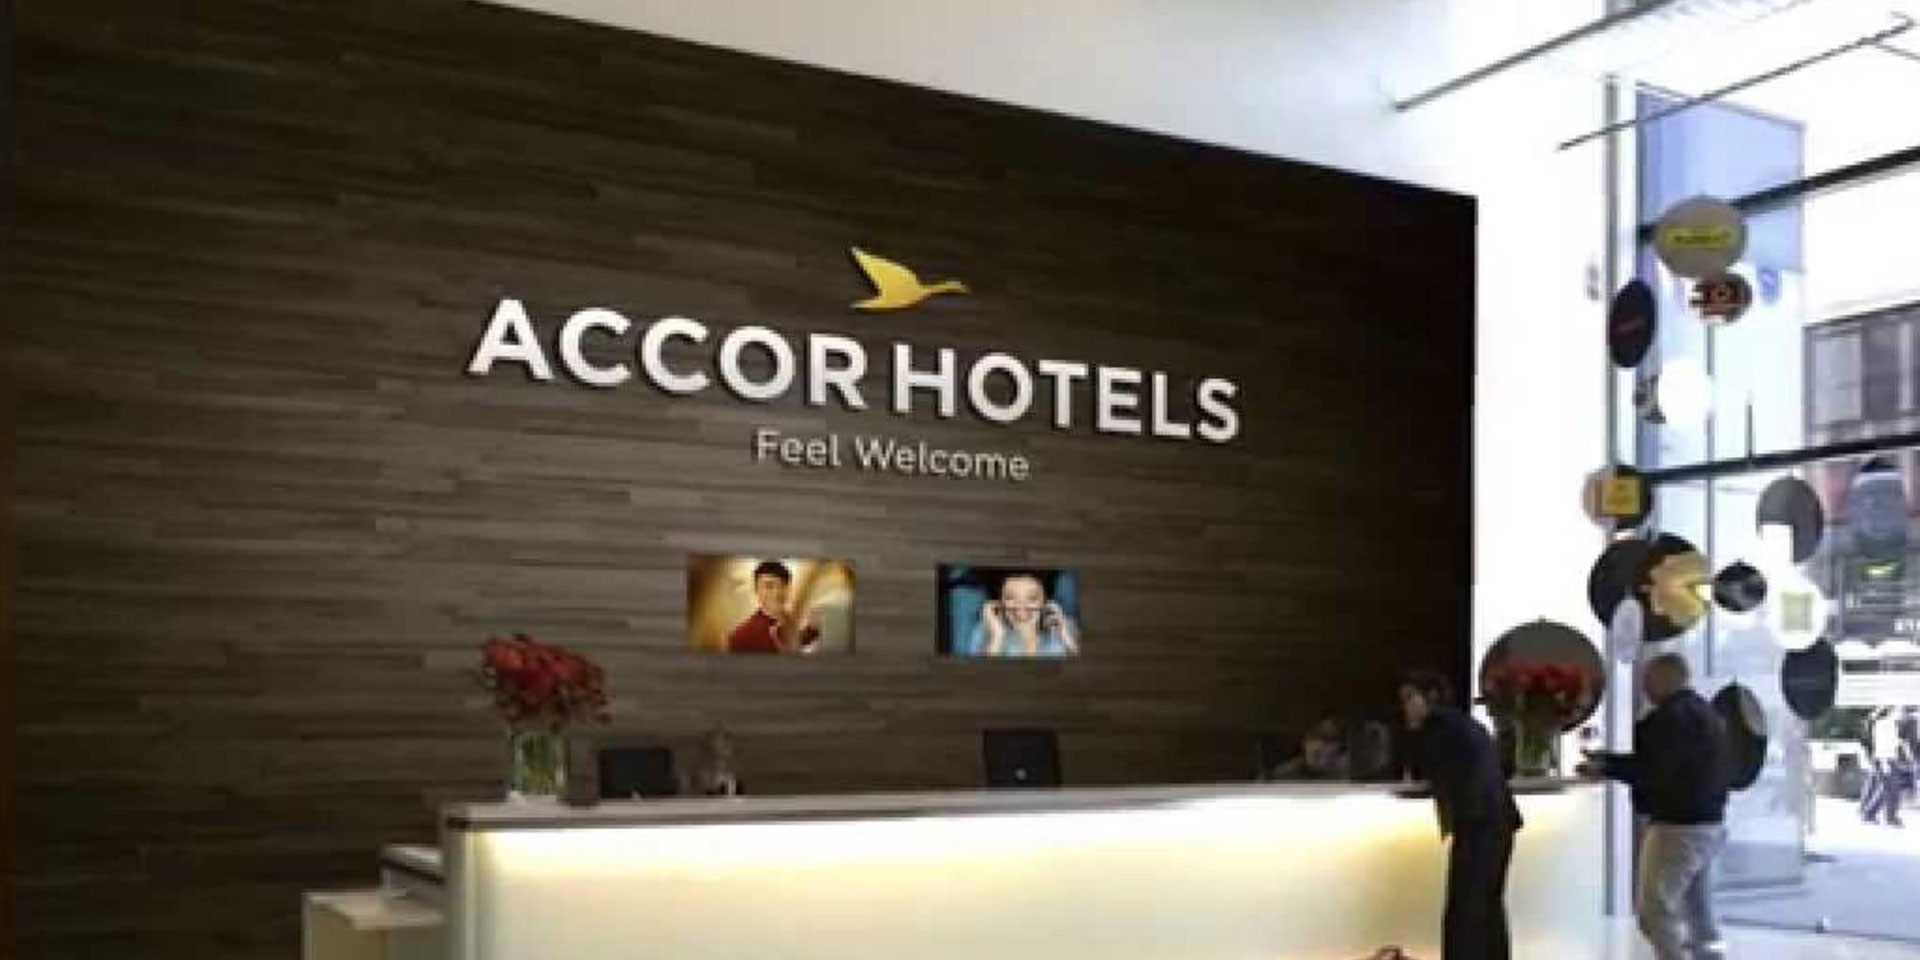 Accor Hotels makes long-awaited move to combine various loyalty programs